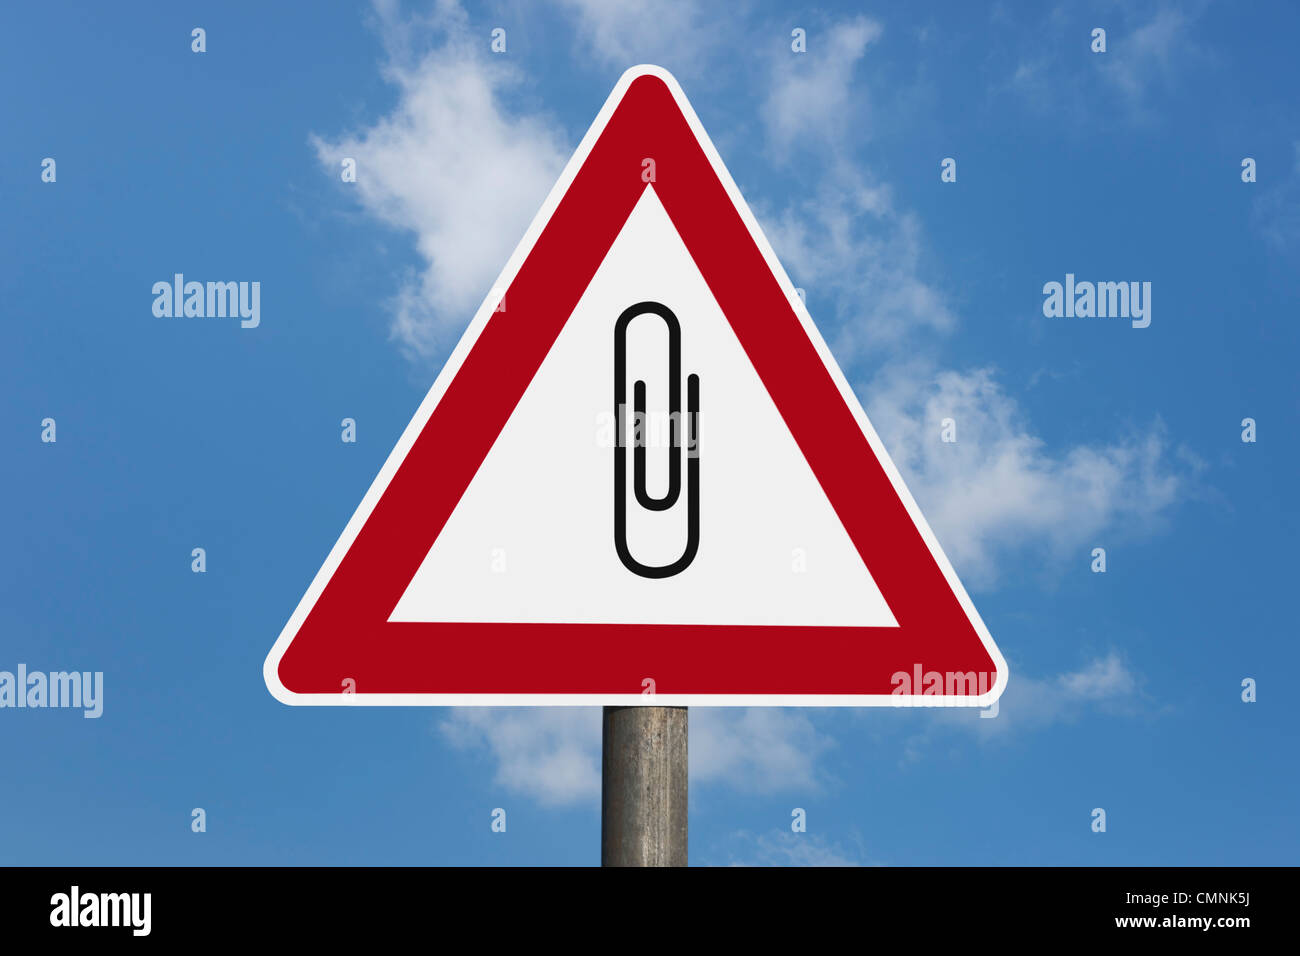 Detail photo of a danger sign with a paper clip in the middle, background sky. Stock Photo